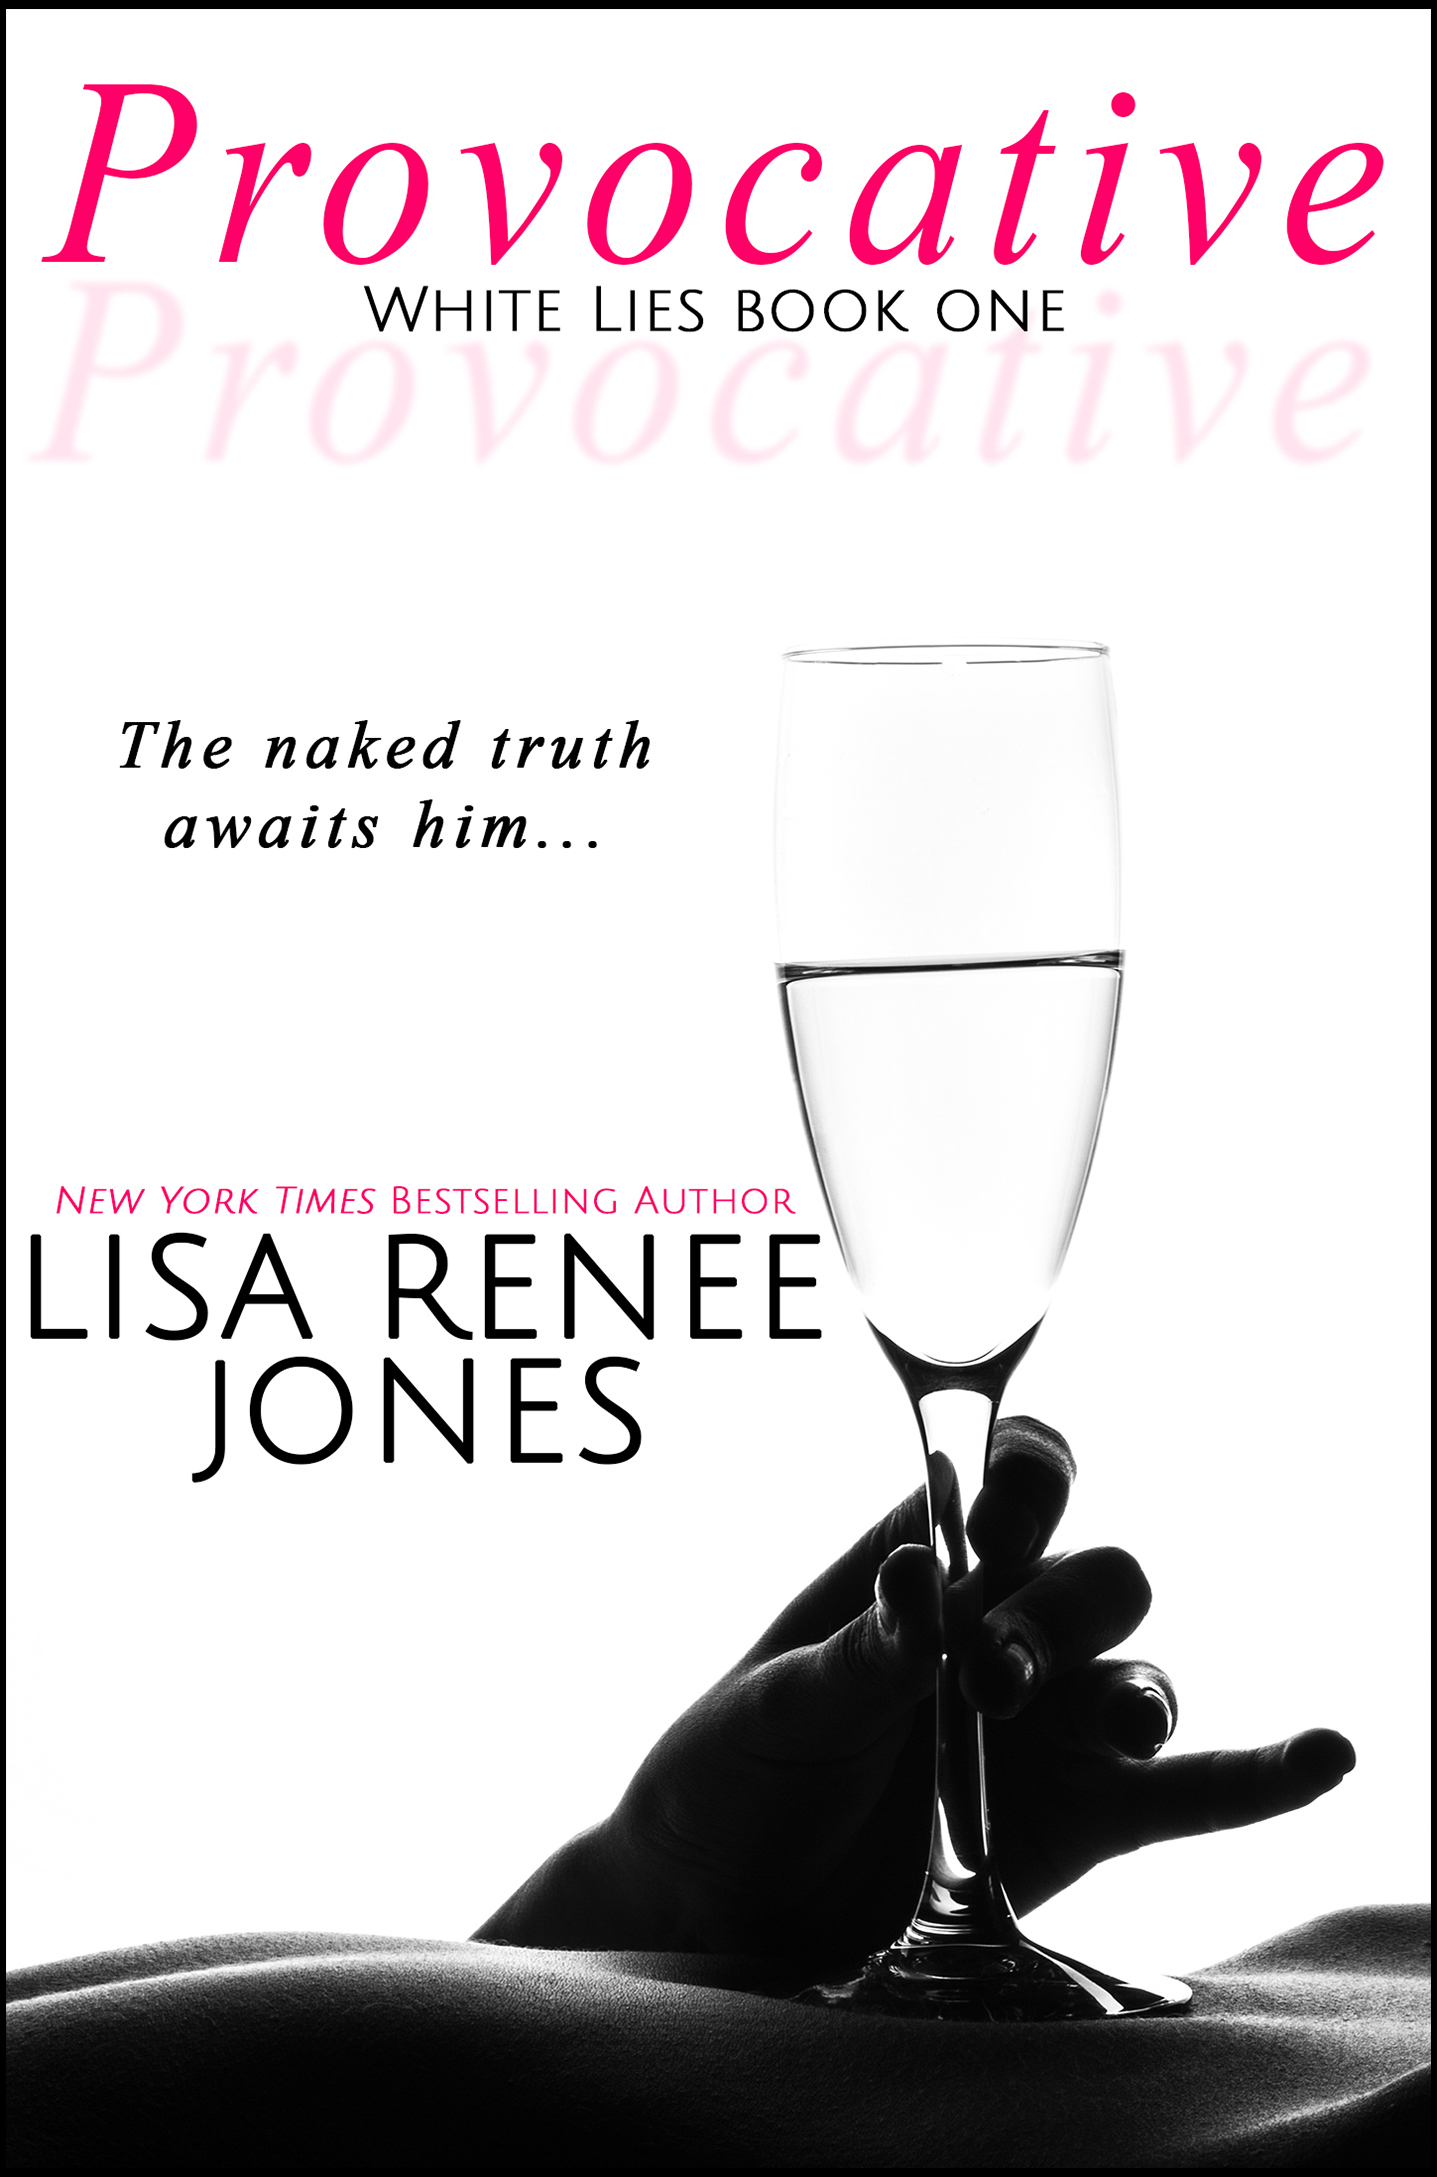 Trailer Reveal: Provocative (White Lies Book One) by Lisa Renee Jones